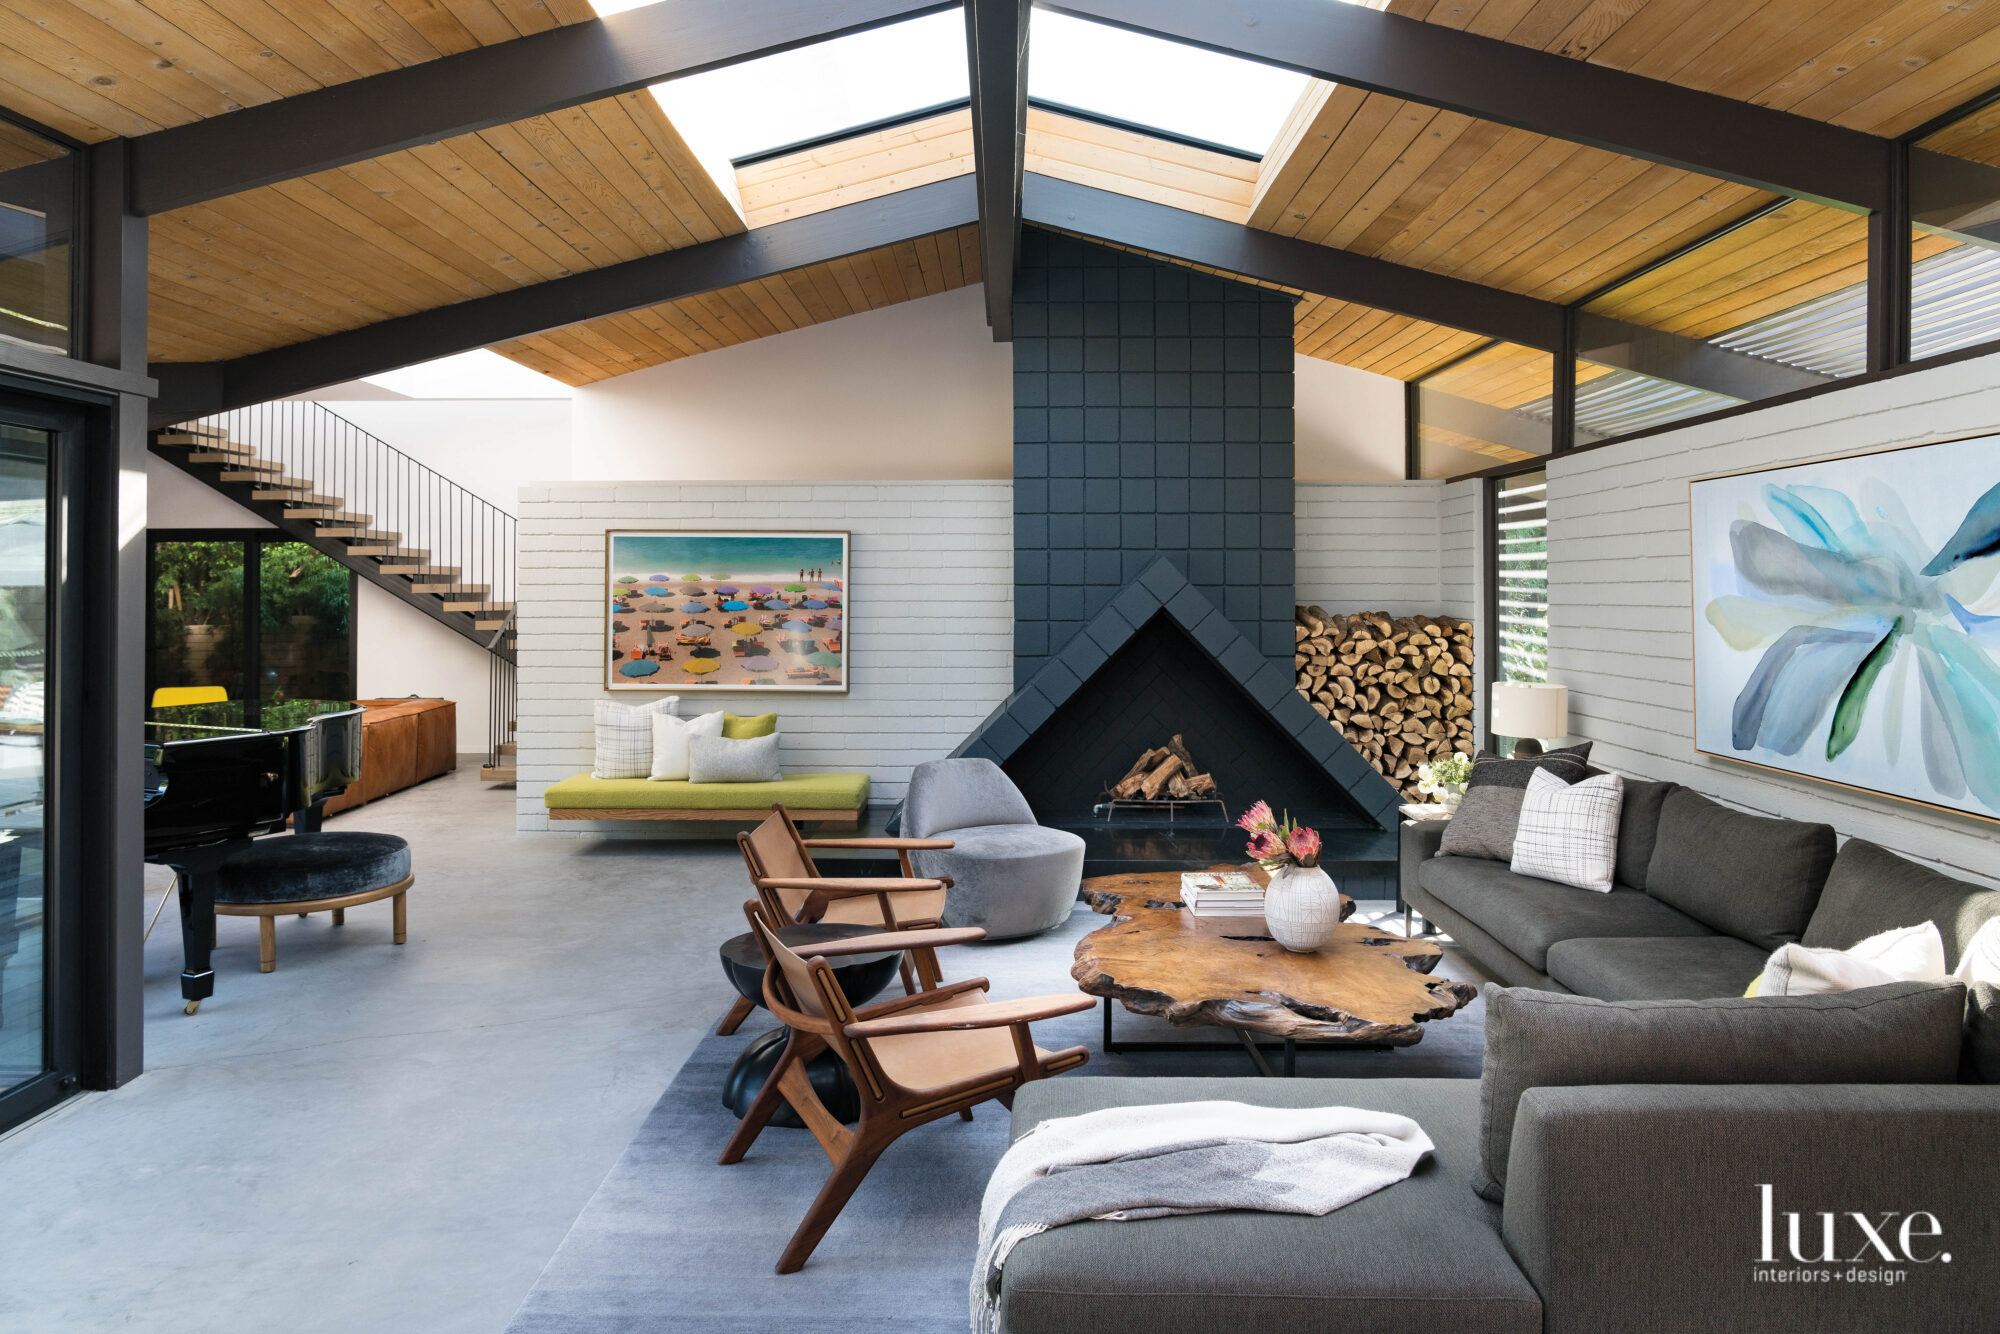 A Family's Modernist L.A. Home Gets A Livable Update